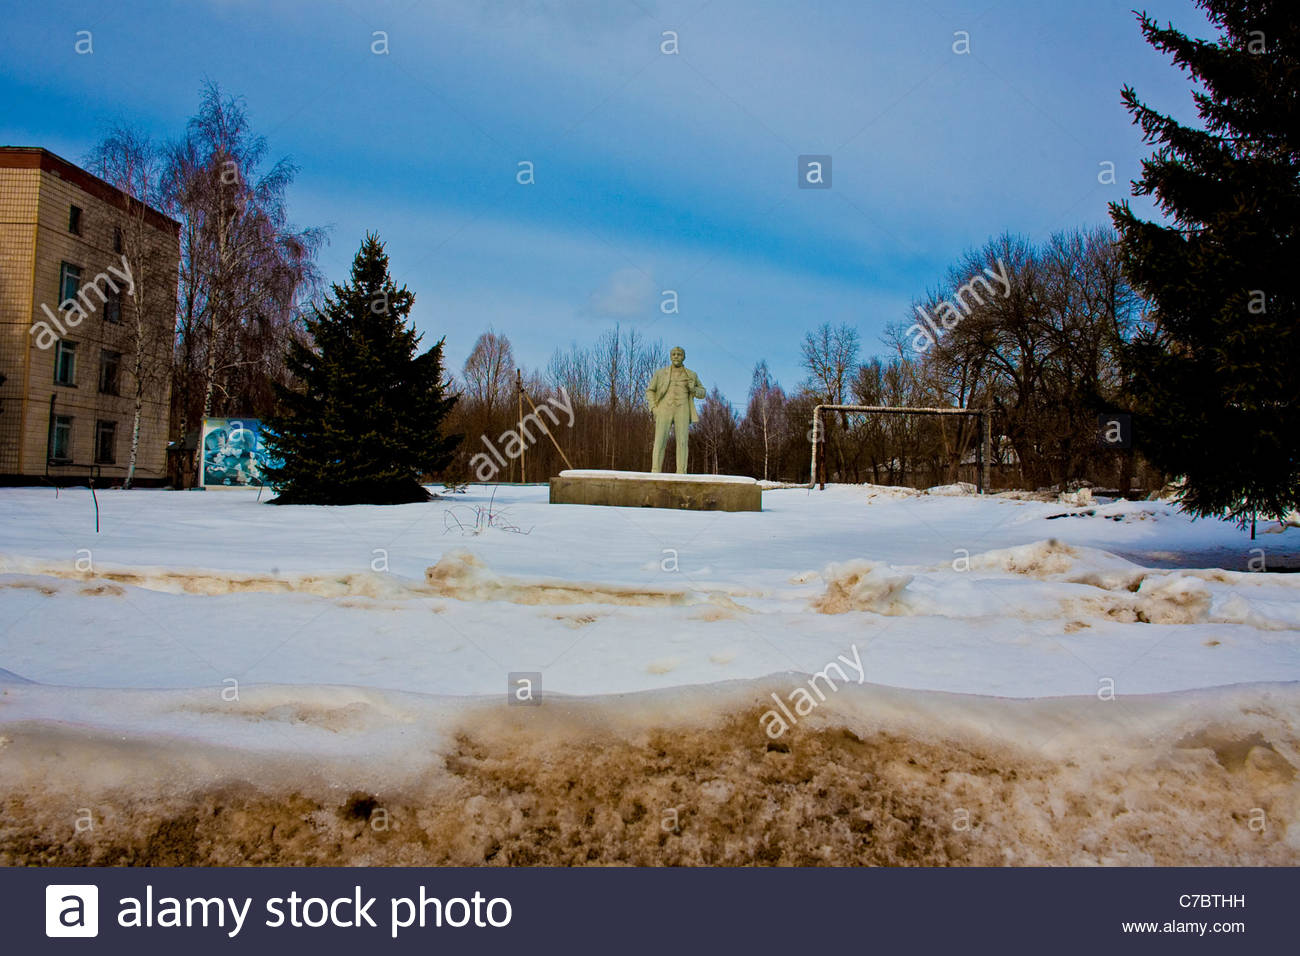 Chernobyl 25 years later, the monument of Vladimir Ilyich Lenin in Chernobyl town - Stock Image